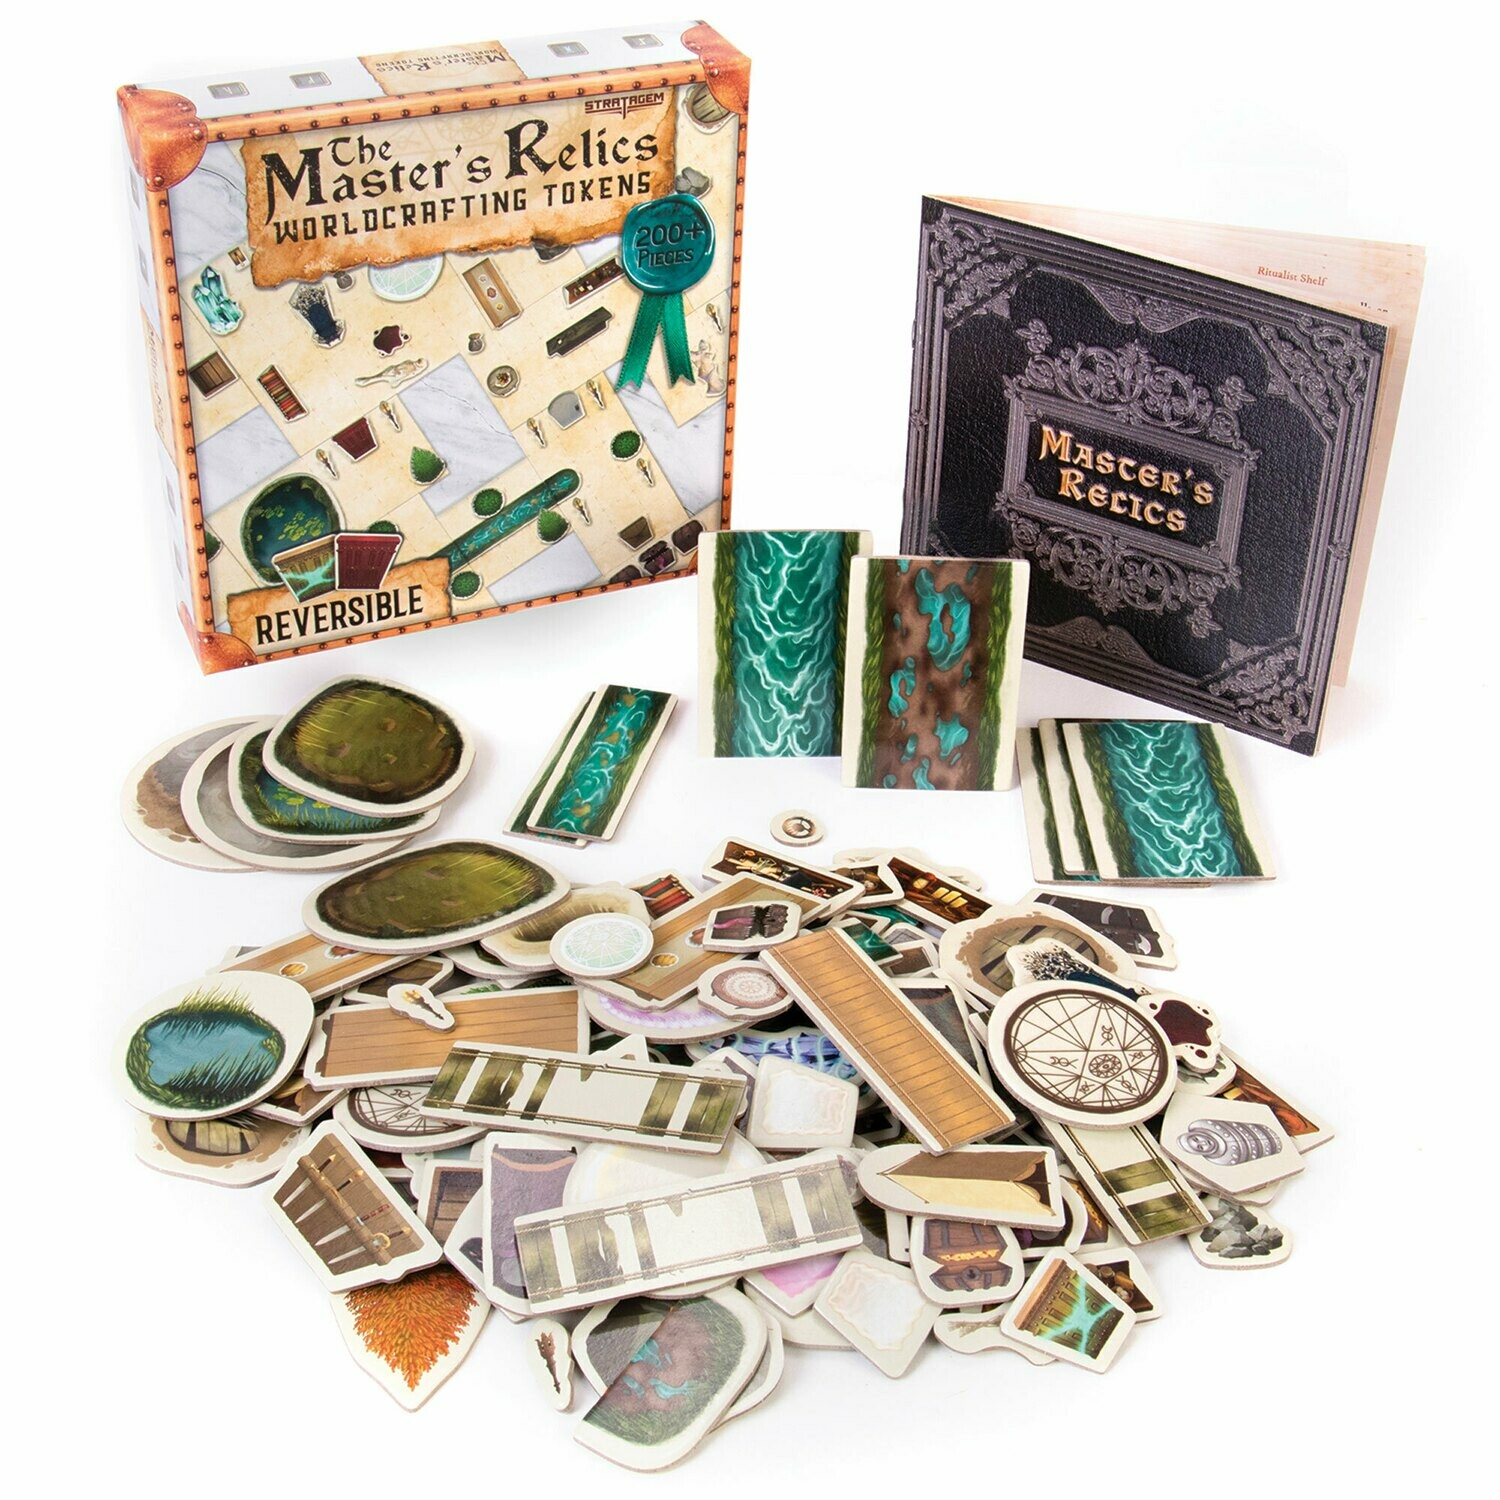 The Master's Relics Worldcrafting Tokens RPG Tabletop Gaming Roleplay Games